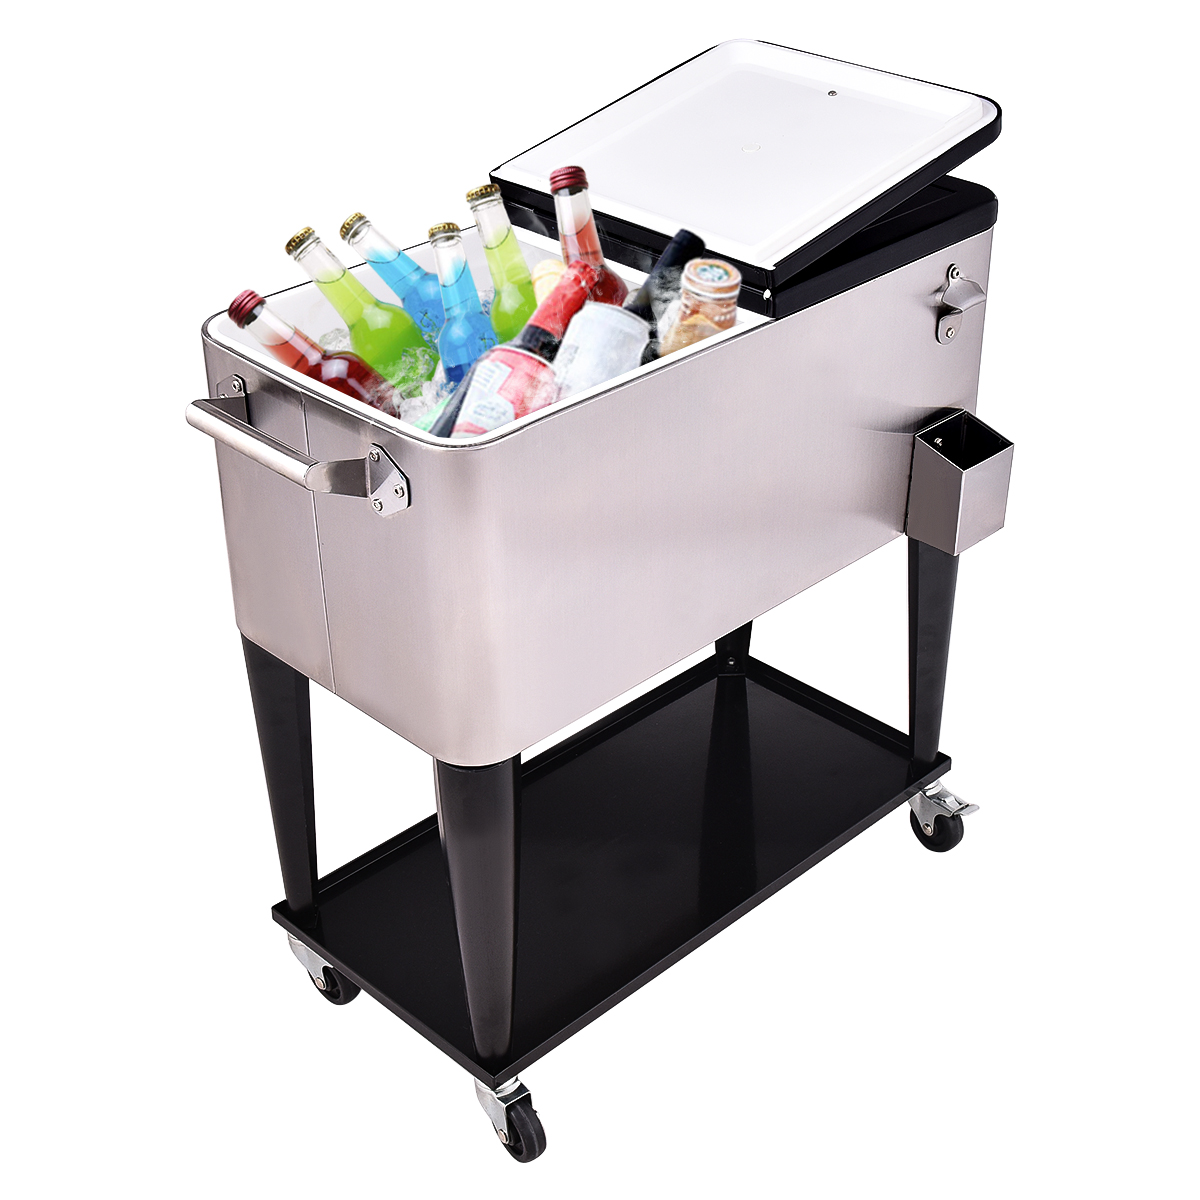 Patio Cooler Rolling Outdoor Stainless Steel Ice Beverage Ch